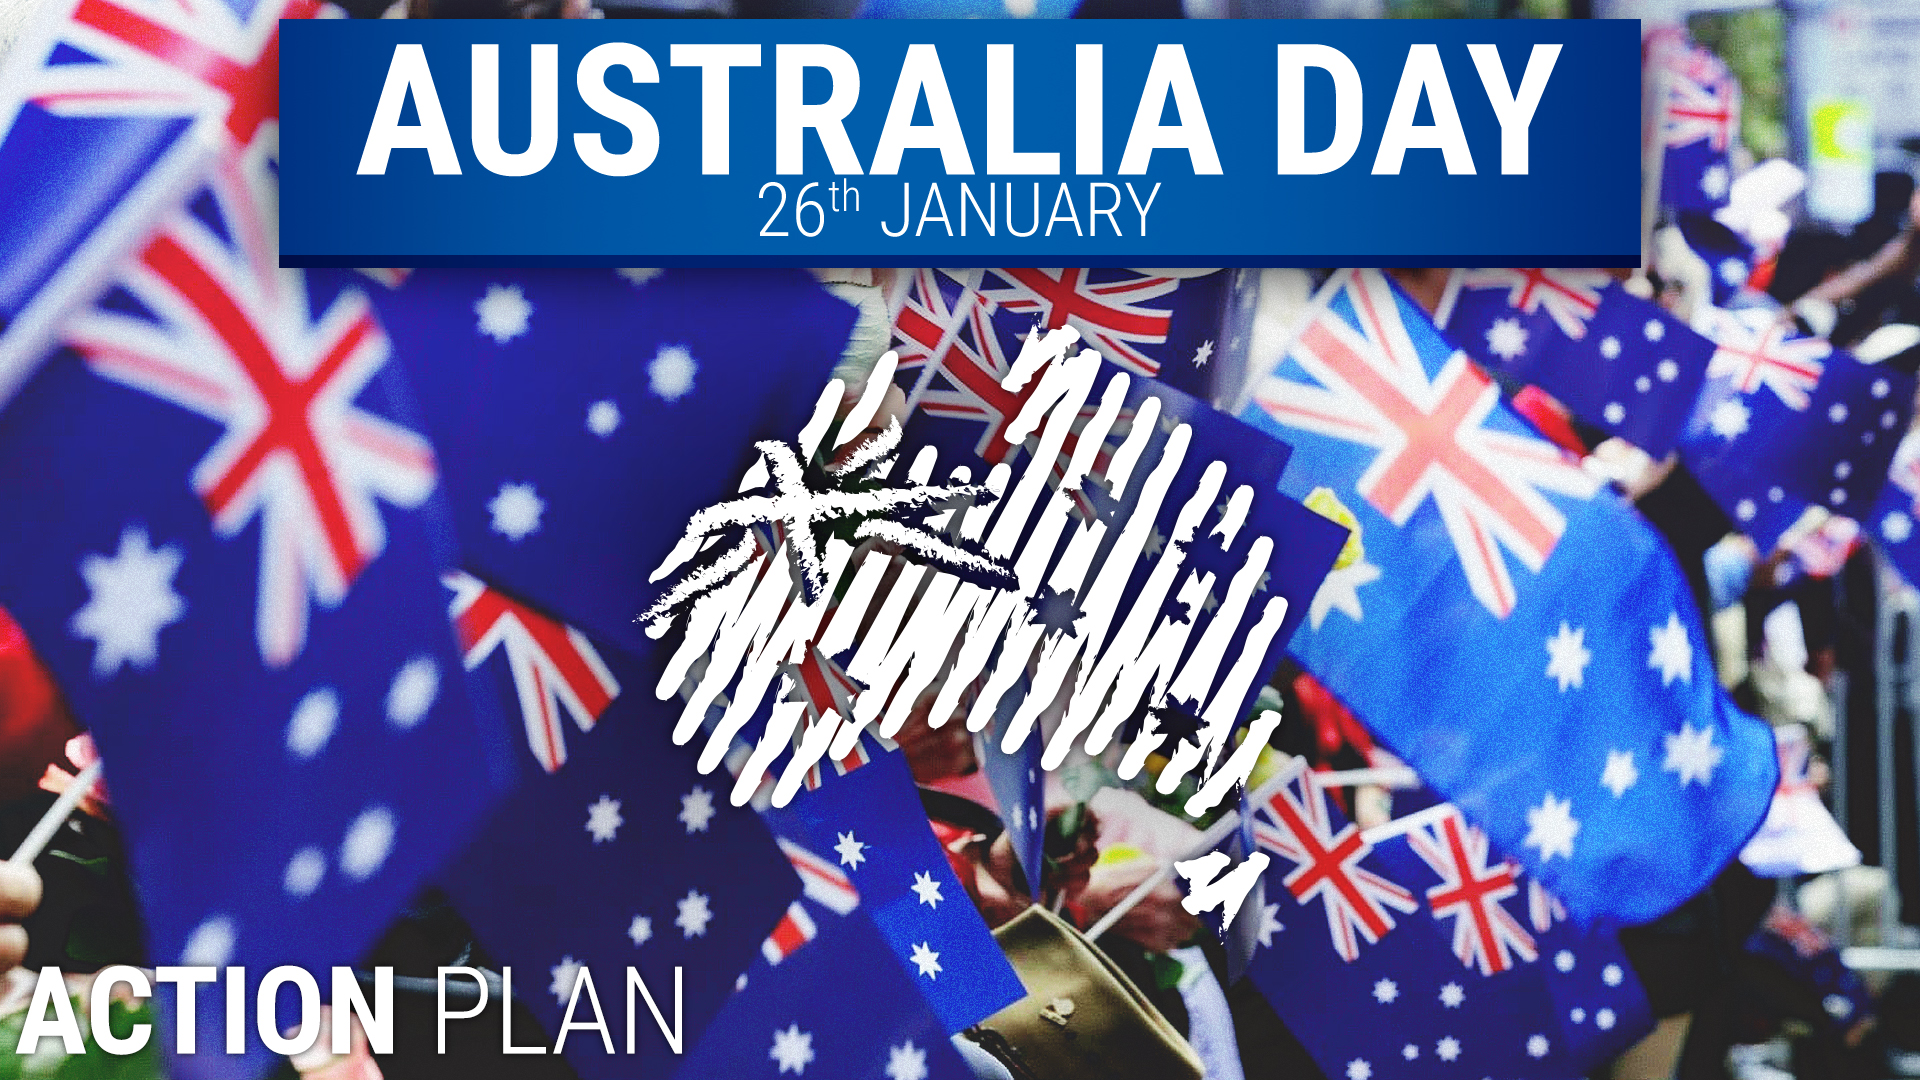 australia day lesson plan Planbookcom - the easiest way to create and manage your lessons online, developed by teachers for teachers.